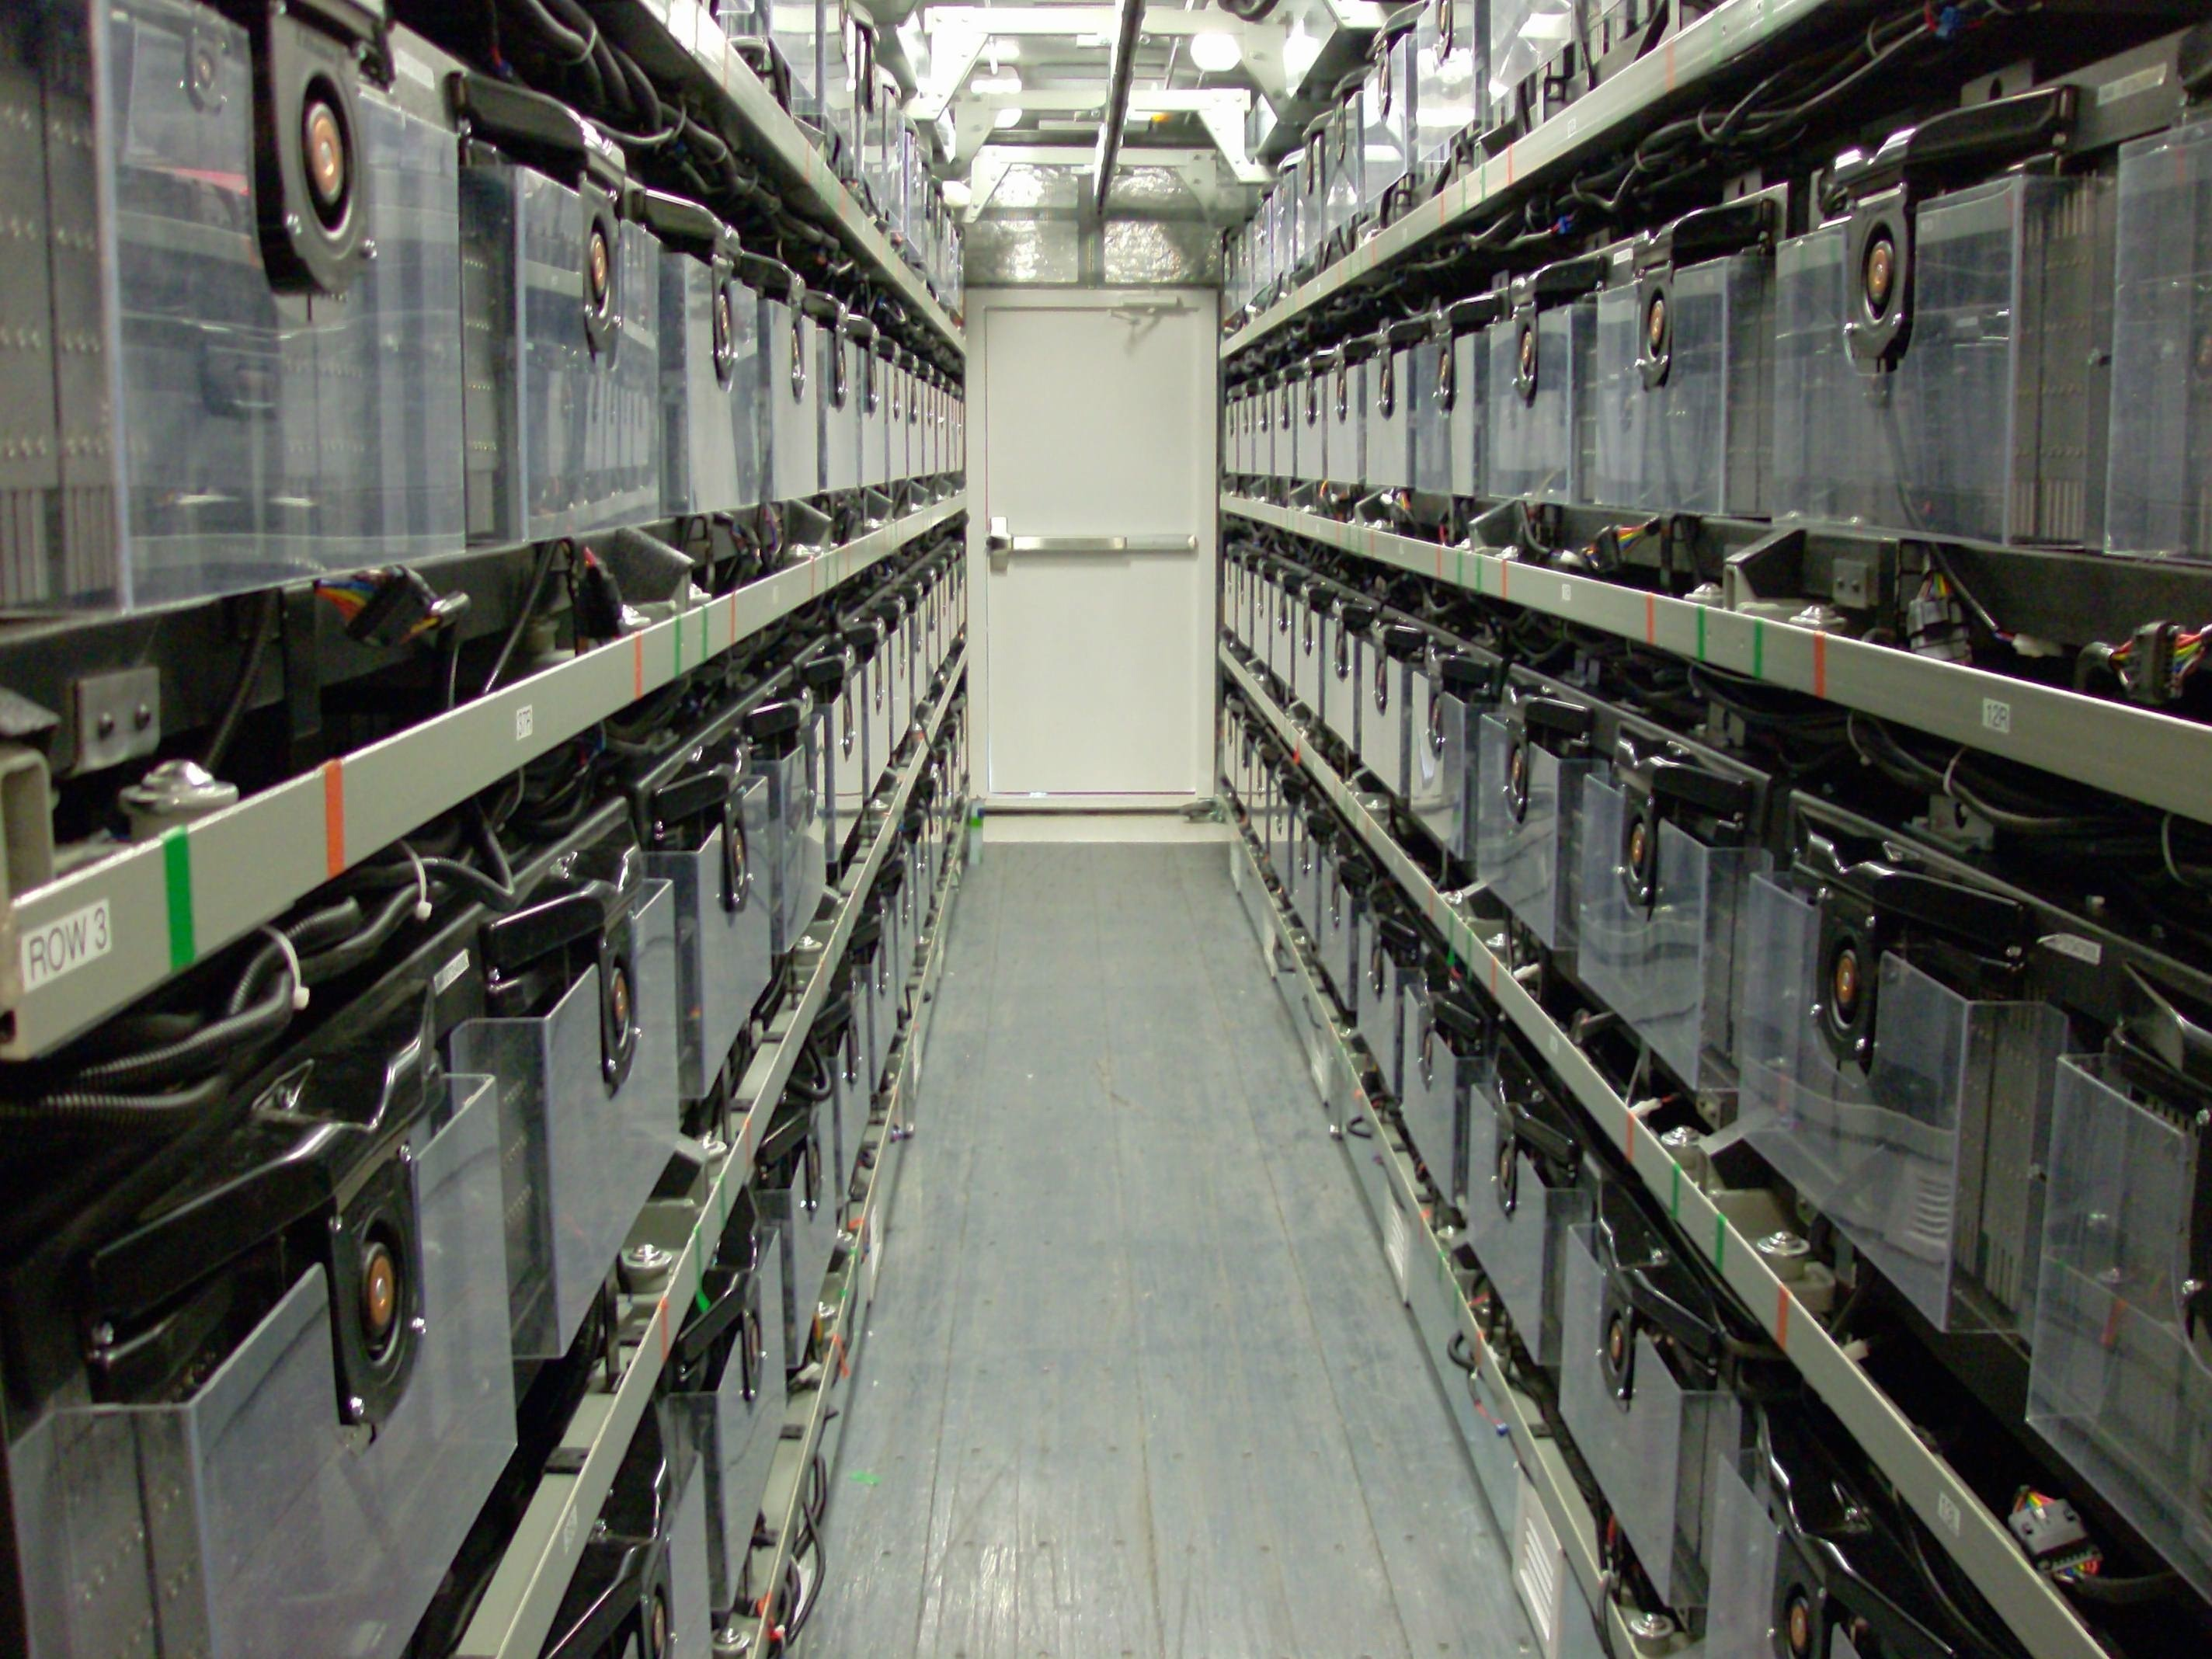 AES Energy Storage battery farm in Barbados. Image courtesy of AES Energy Storage.